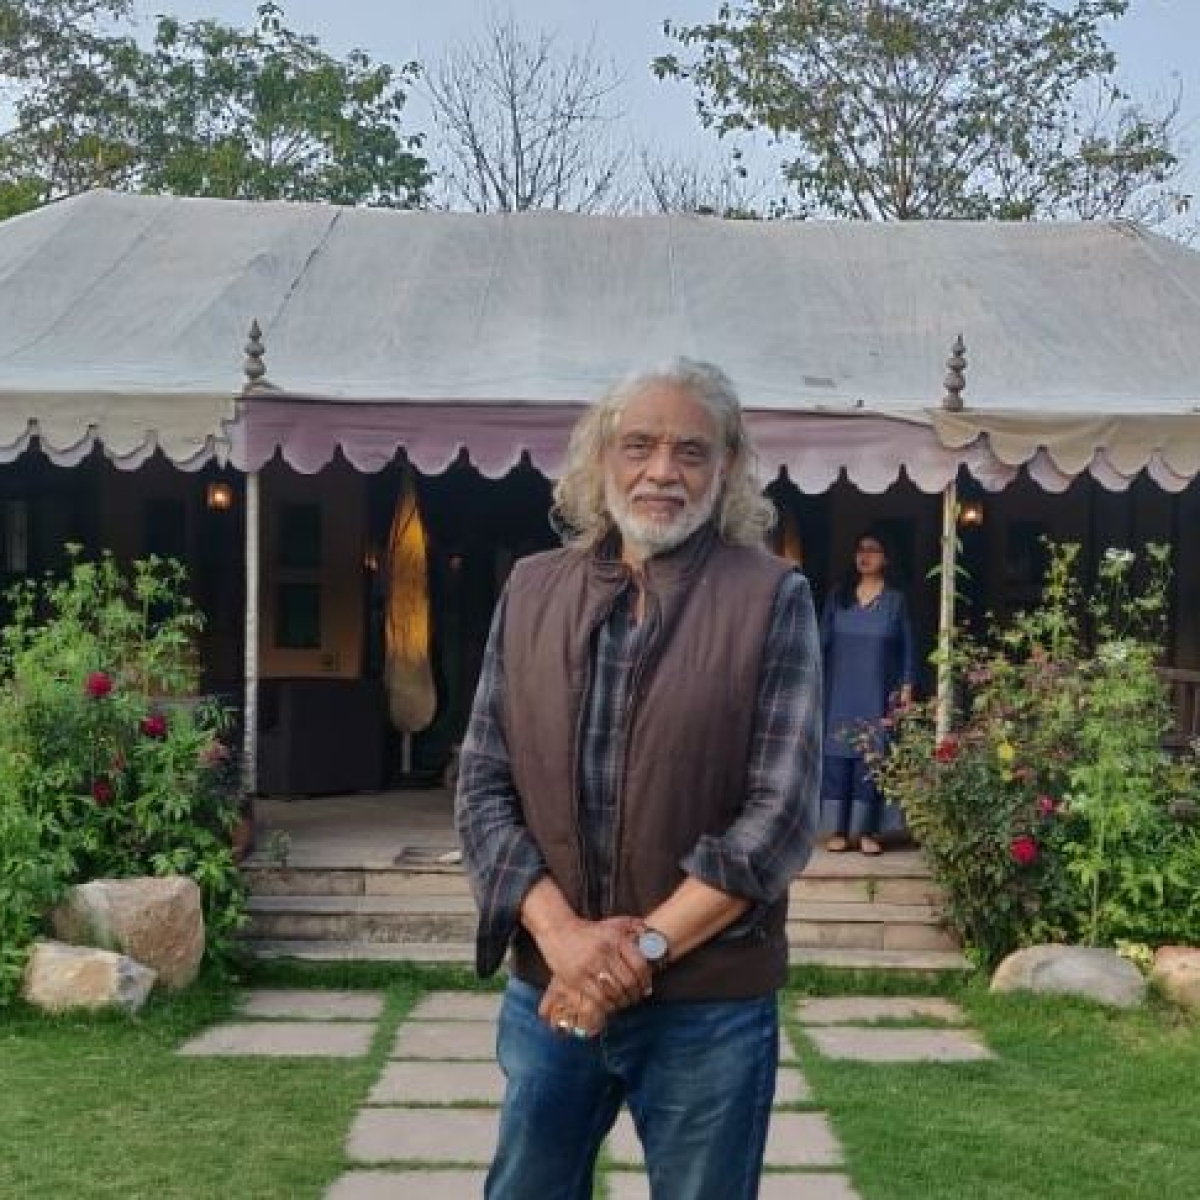 Muzaffar Ali: Sufism has power to lead us towards a global family where traditions and religions blend in love